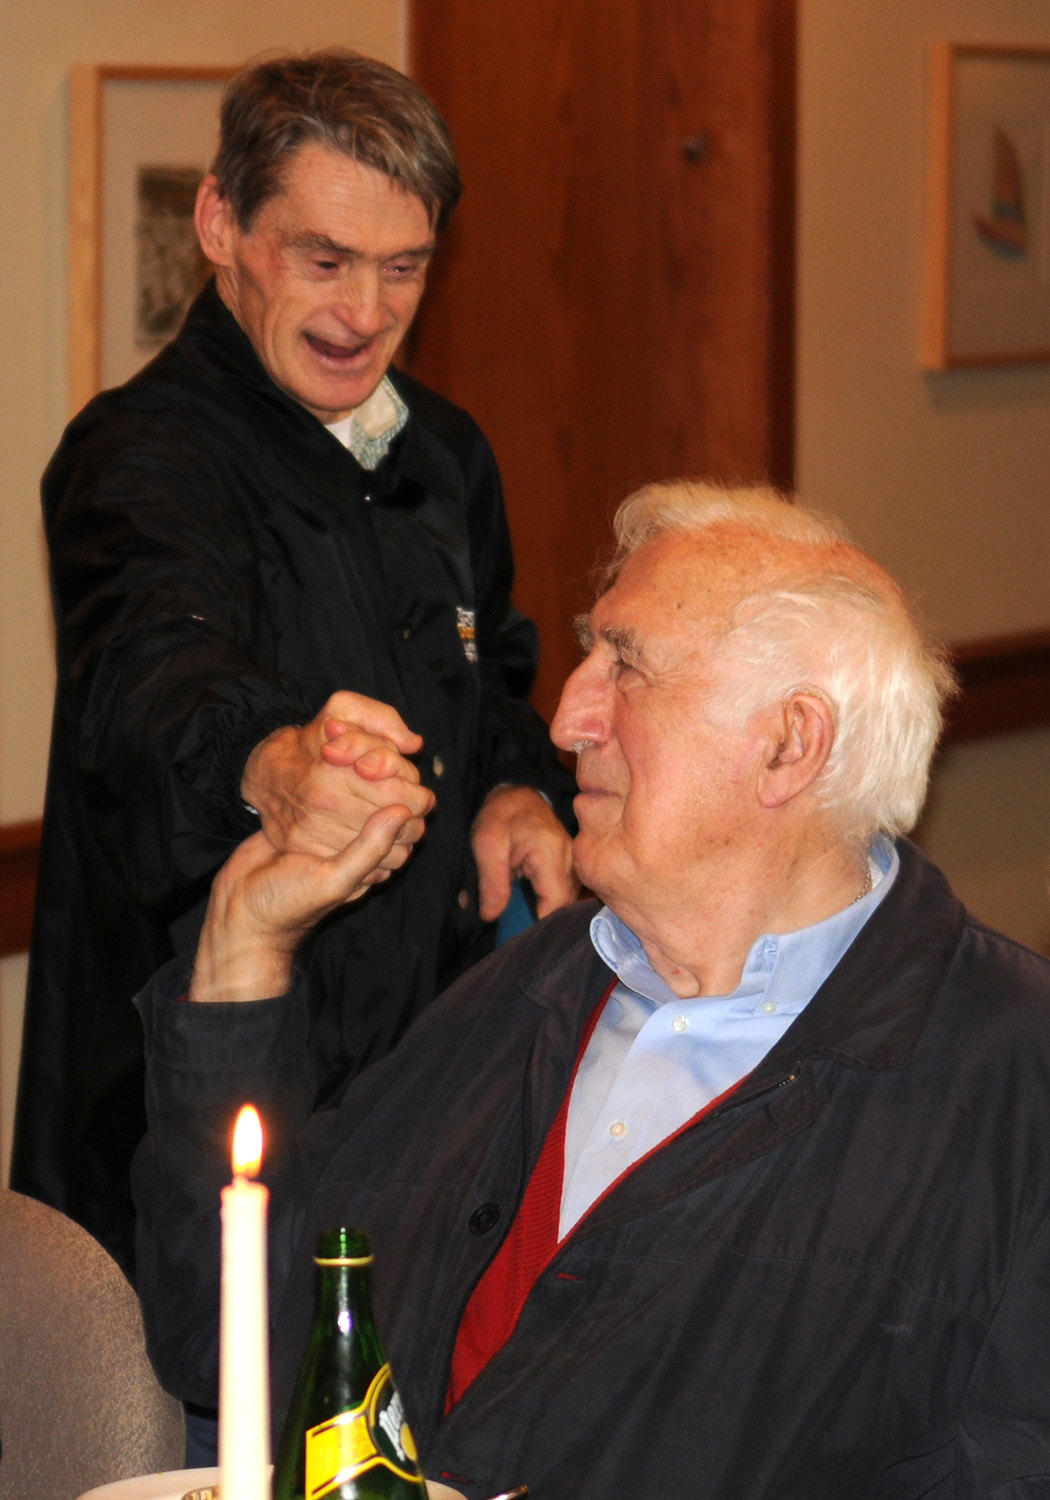 Jean Vanier with another member of the L'Arche community